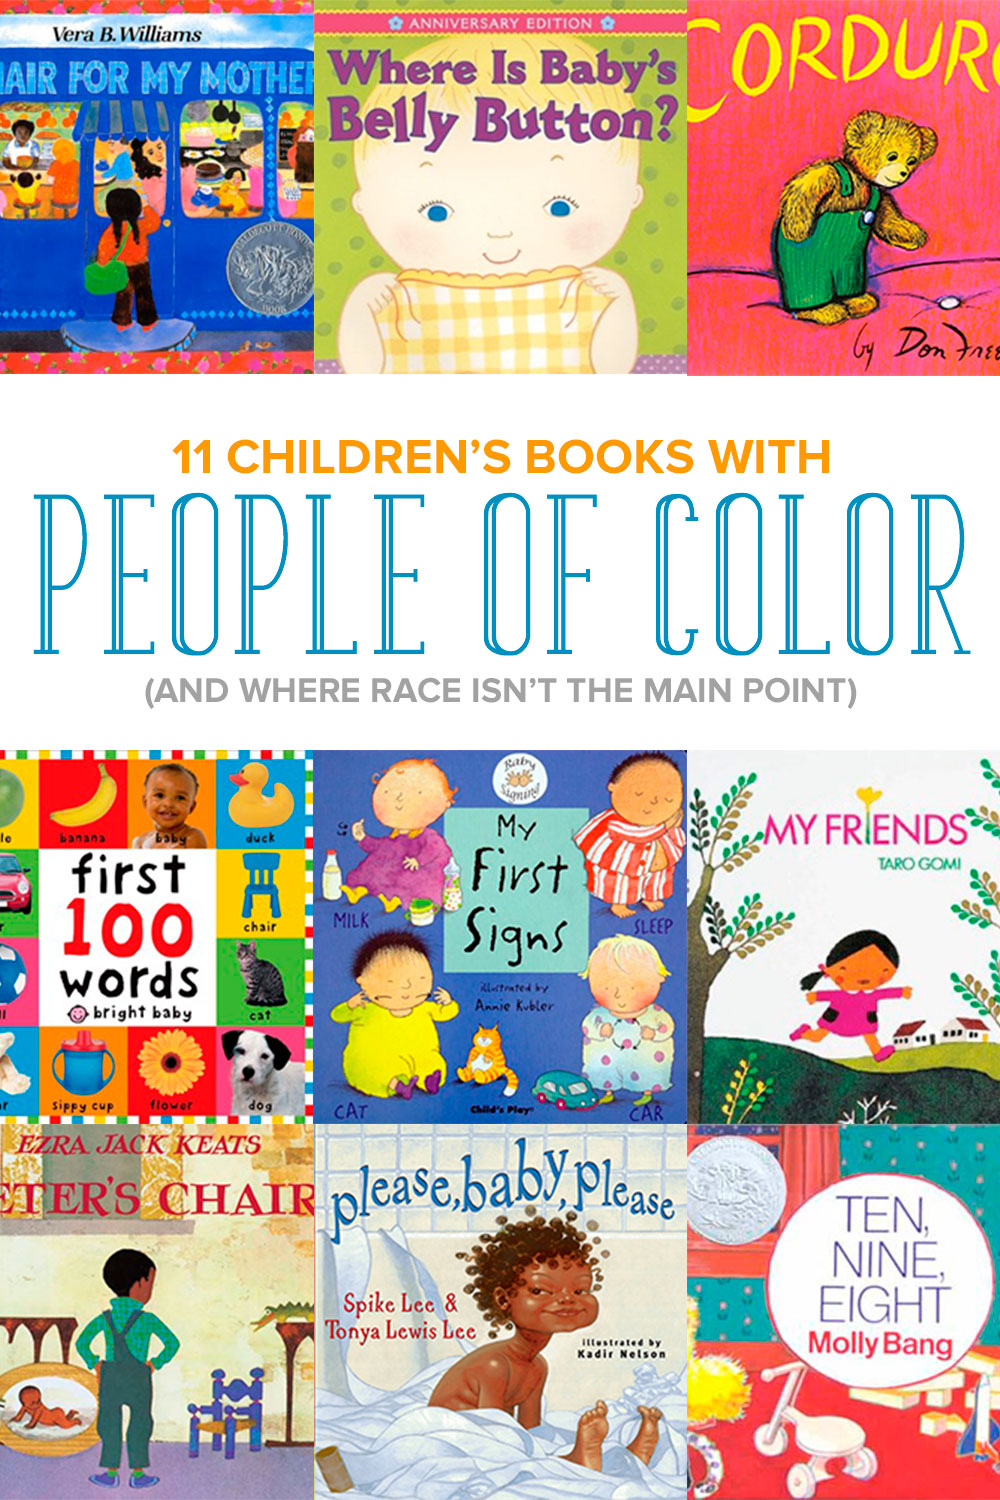 Add diversity to your child's library with these 11 children's books about people of color (and where the focus of the book isn't about race).